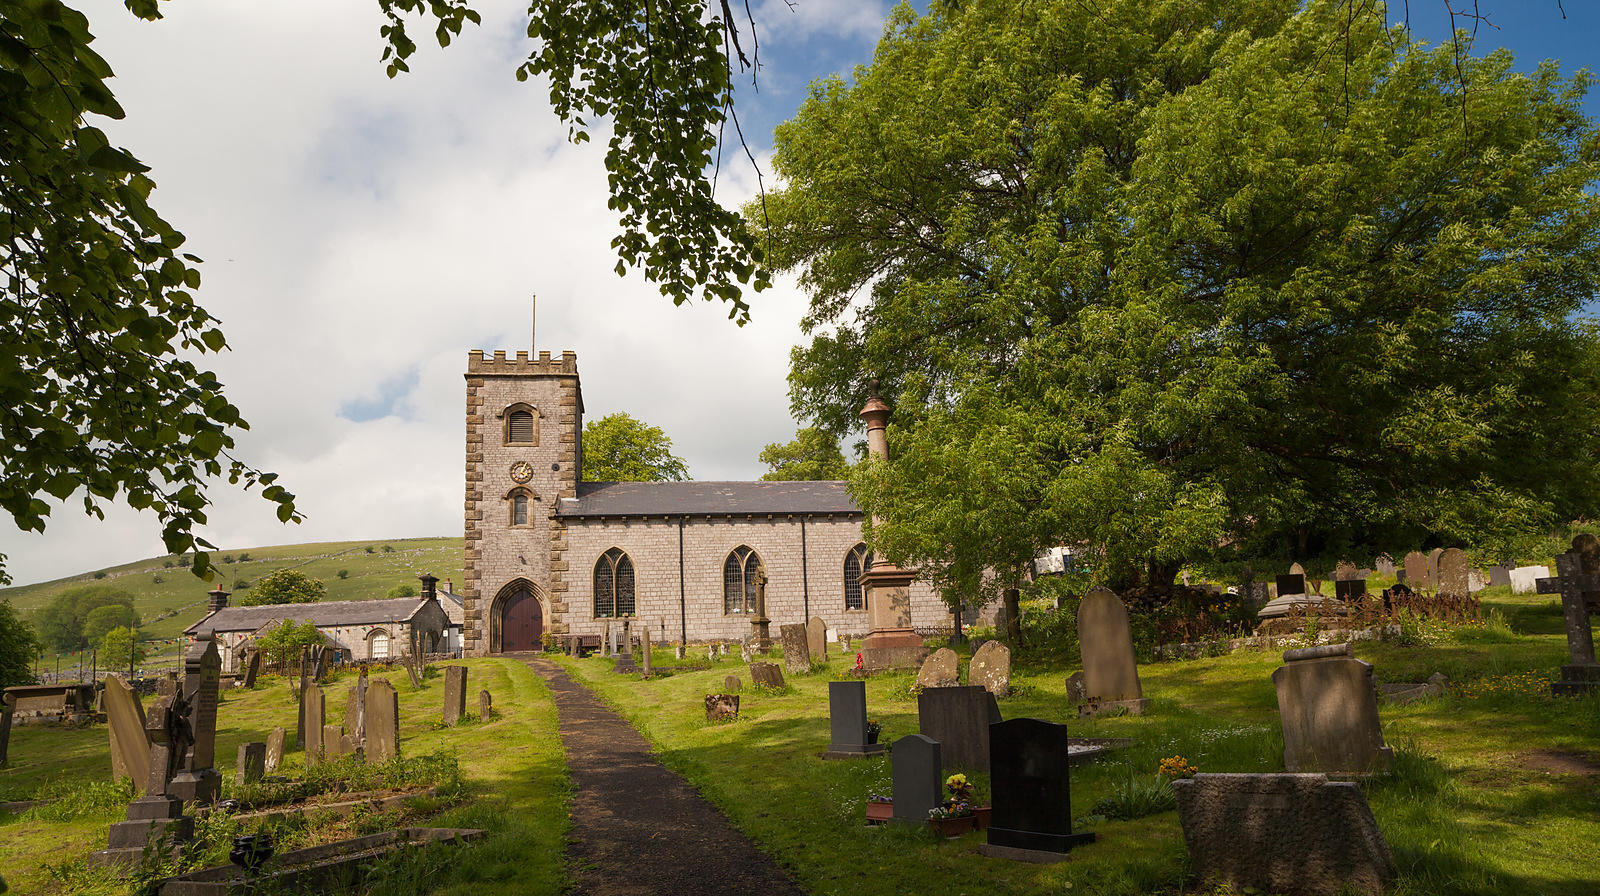 St Michael and All Angels church at Earl Sterndale